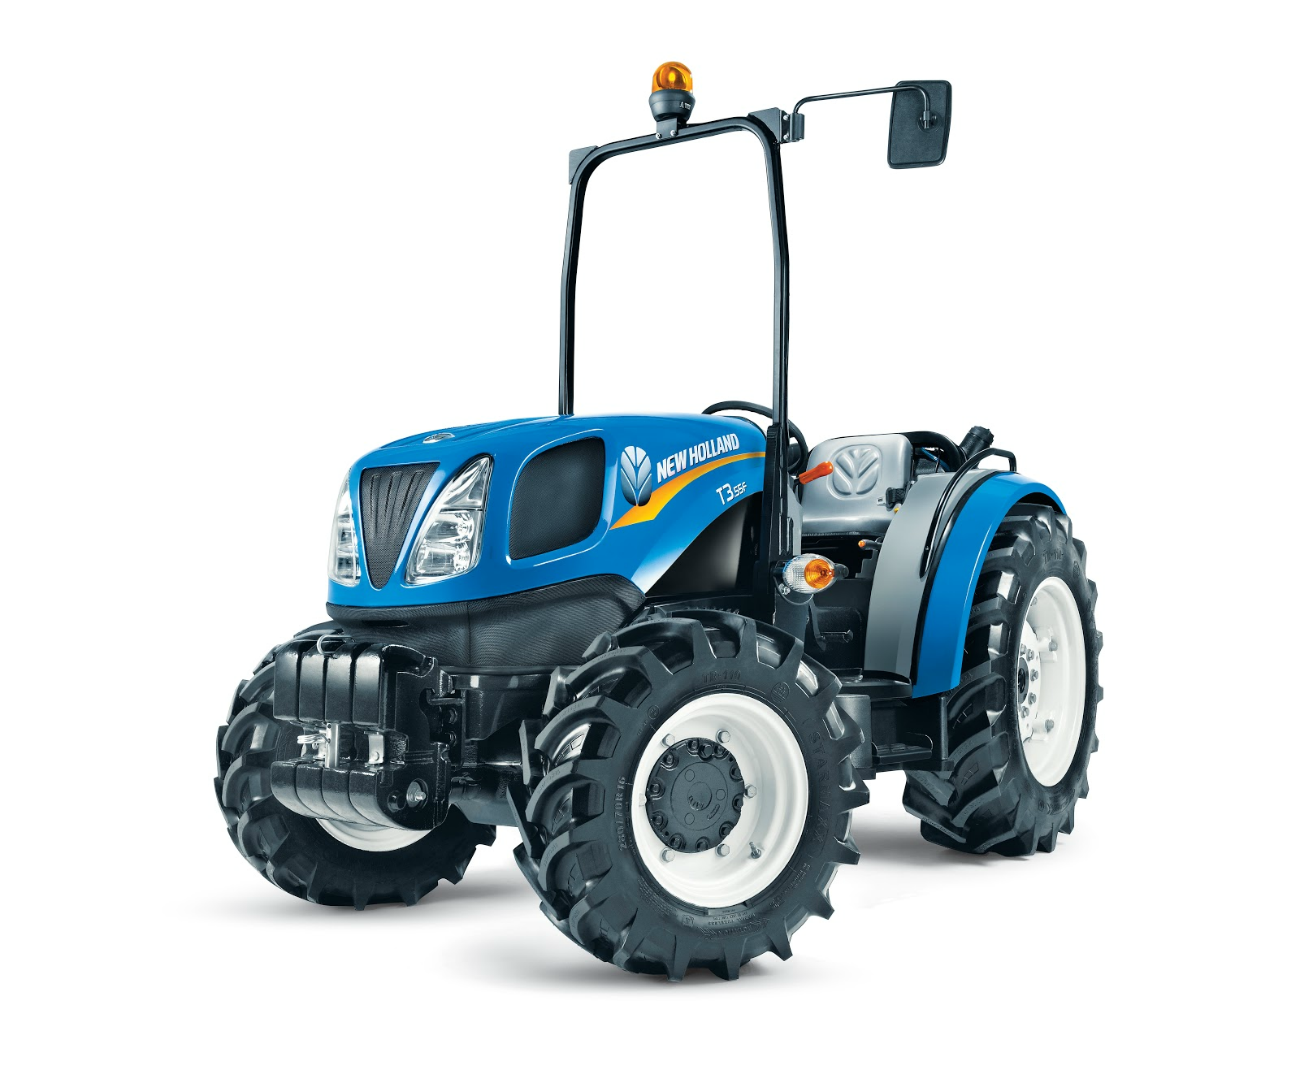 Furniture furniture seating storage operator seating - Designapplause New Holland T3f Tractor